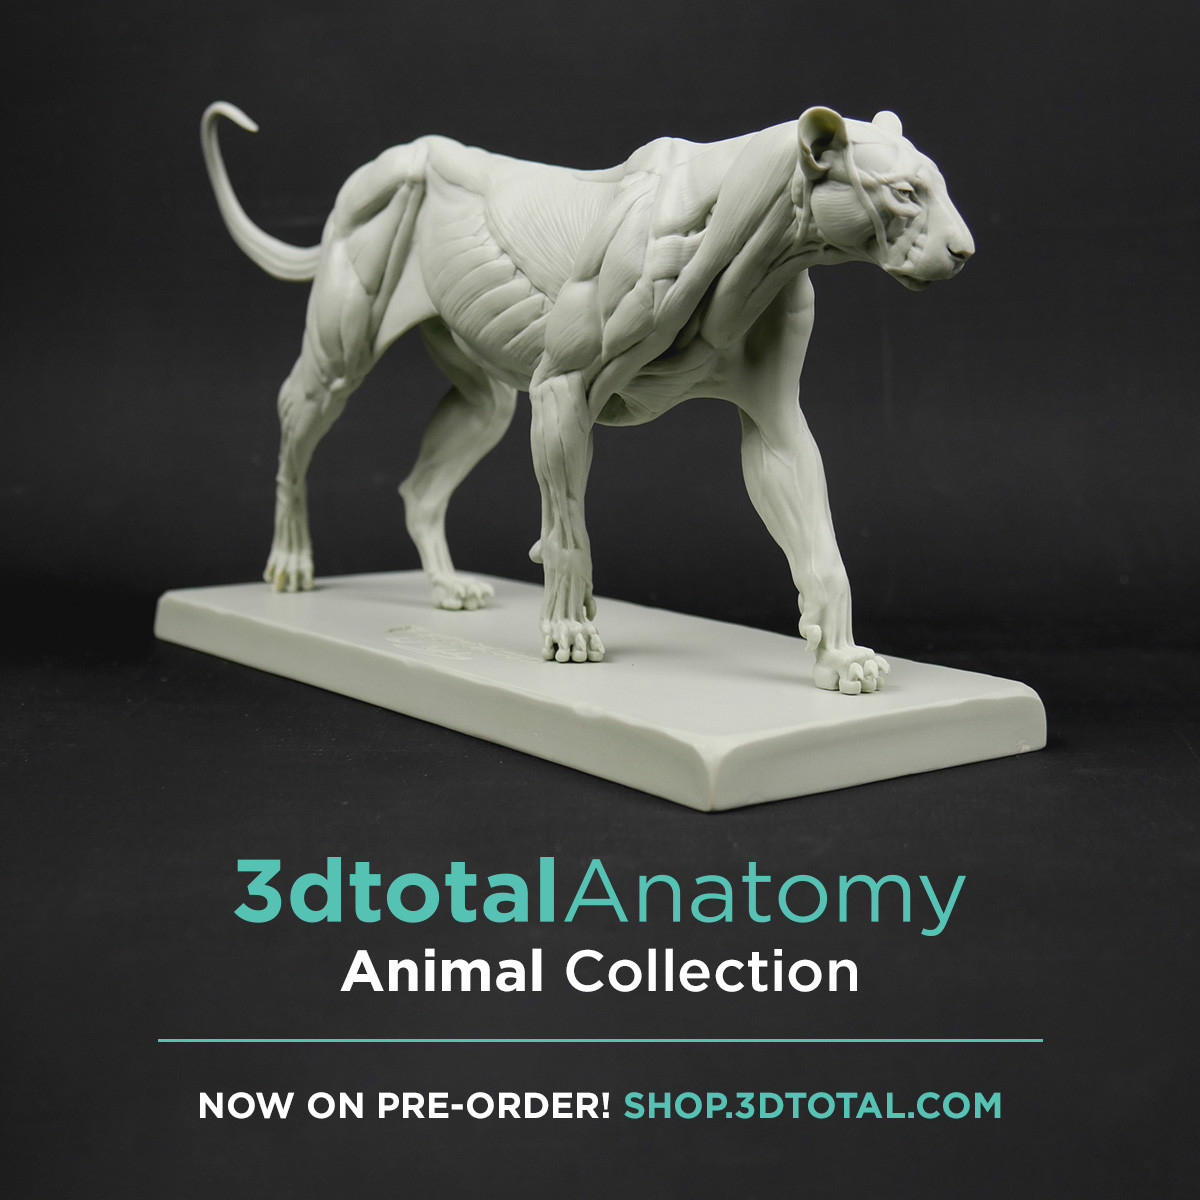 If you want to order the Feline ecorche : https://shop.3dtotal.com/3dtotal-anatomy-feline-figure.html